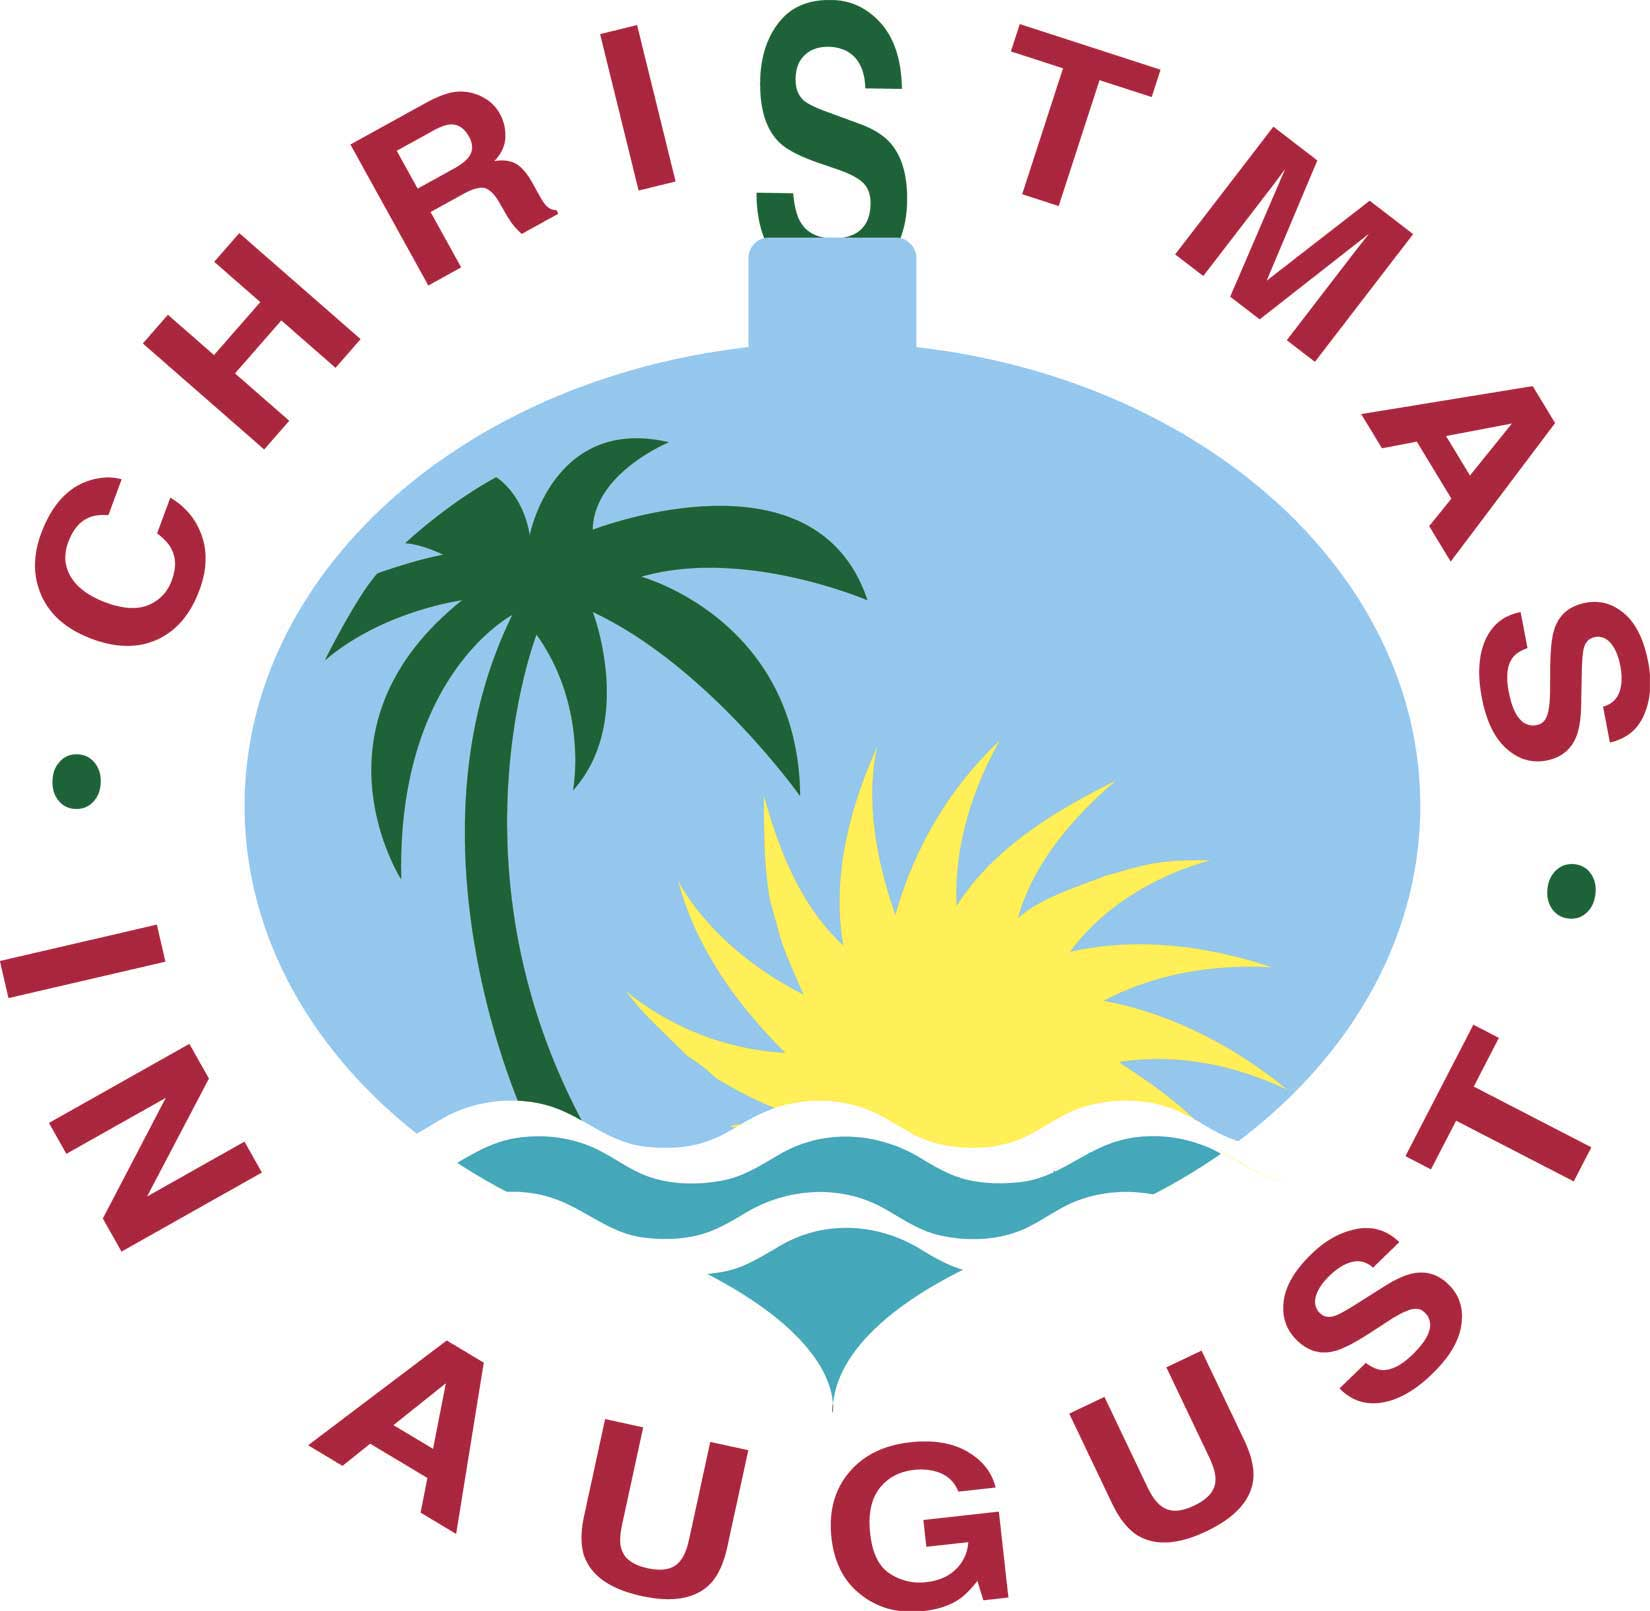 Christmas in august clipart clip free August clipart images 4 - WikiClipArt clip free